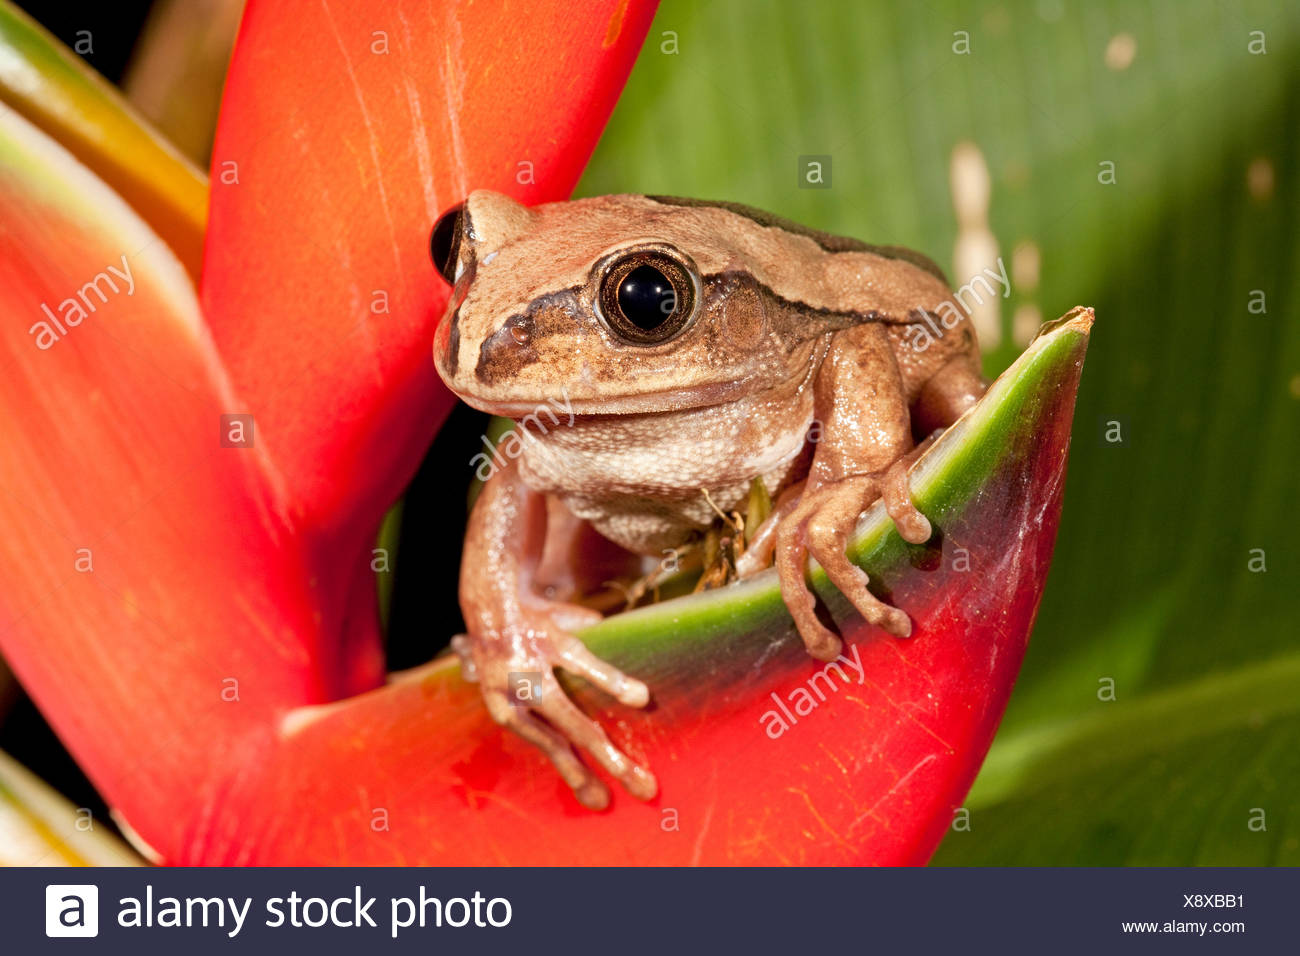 Photo of a brown-backed tree frog - Stock Image